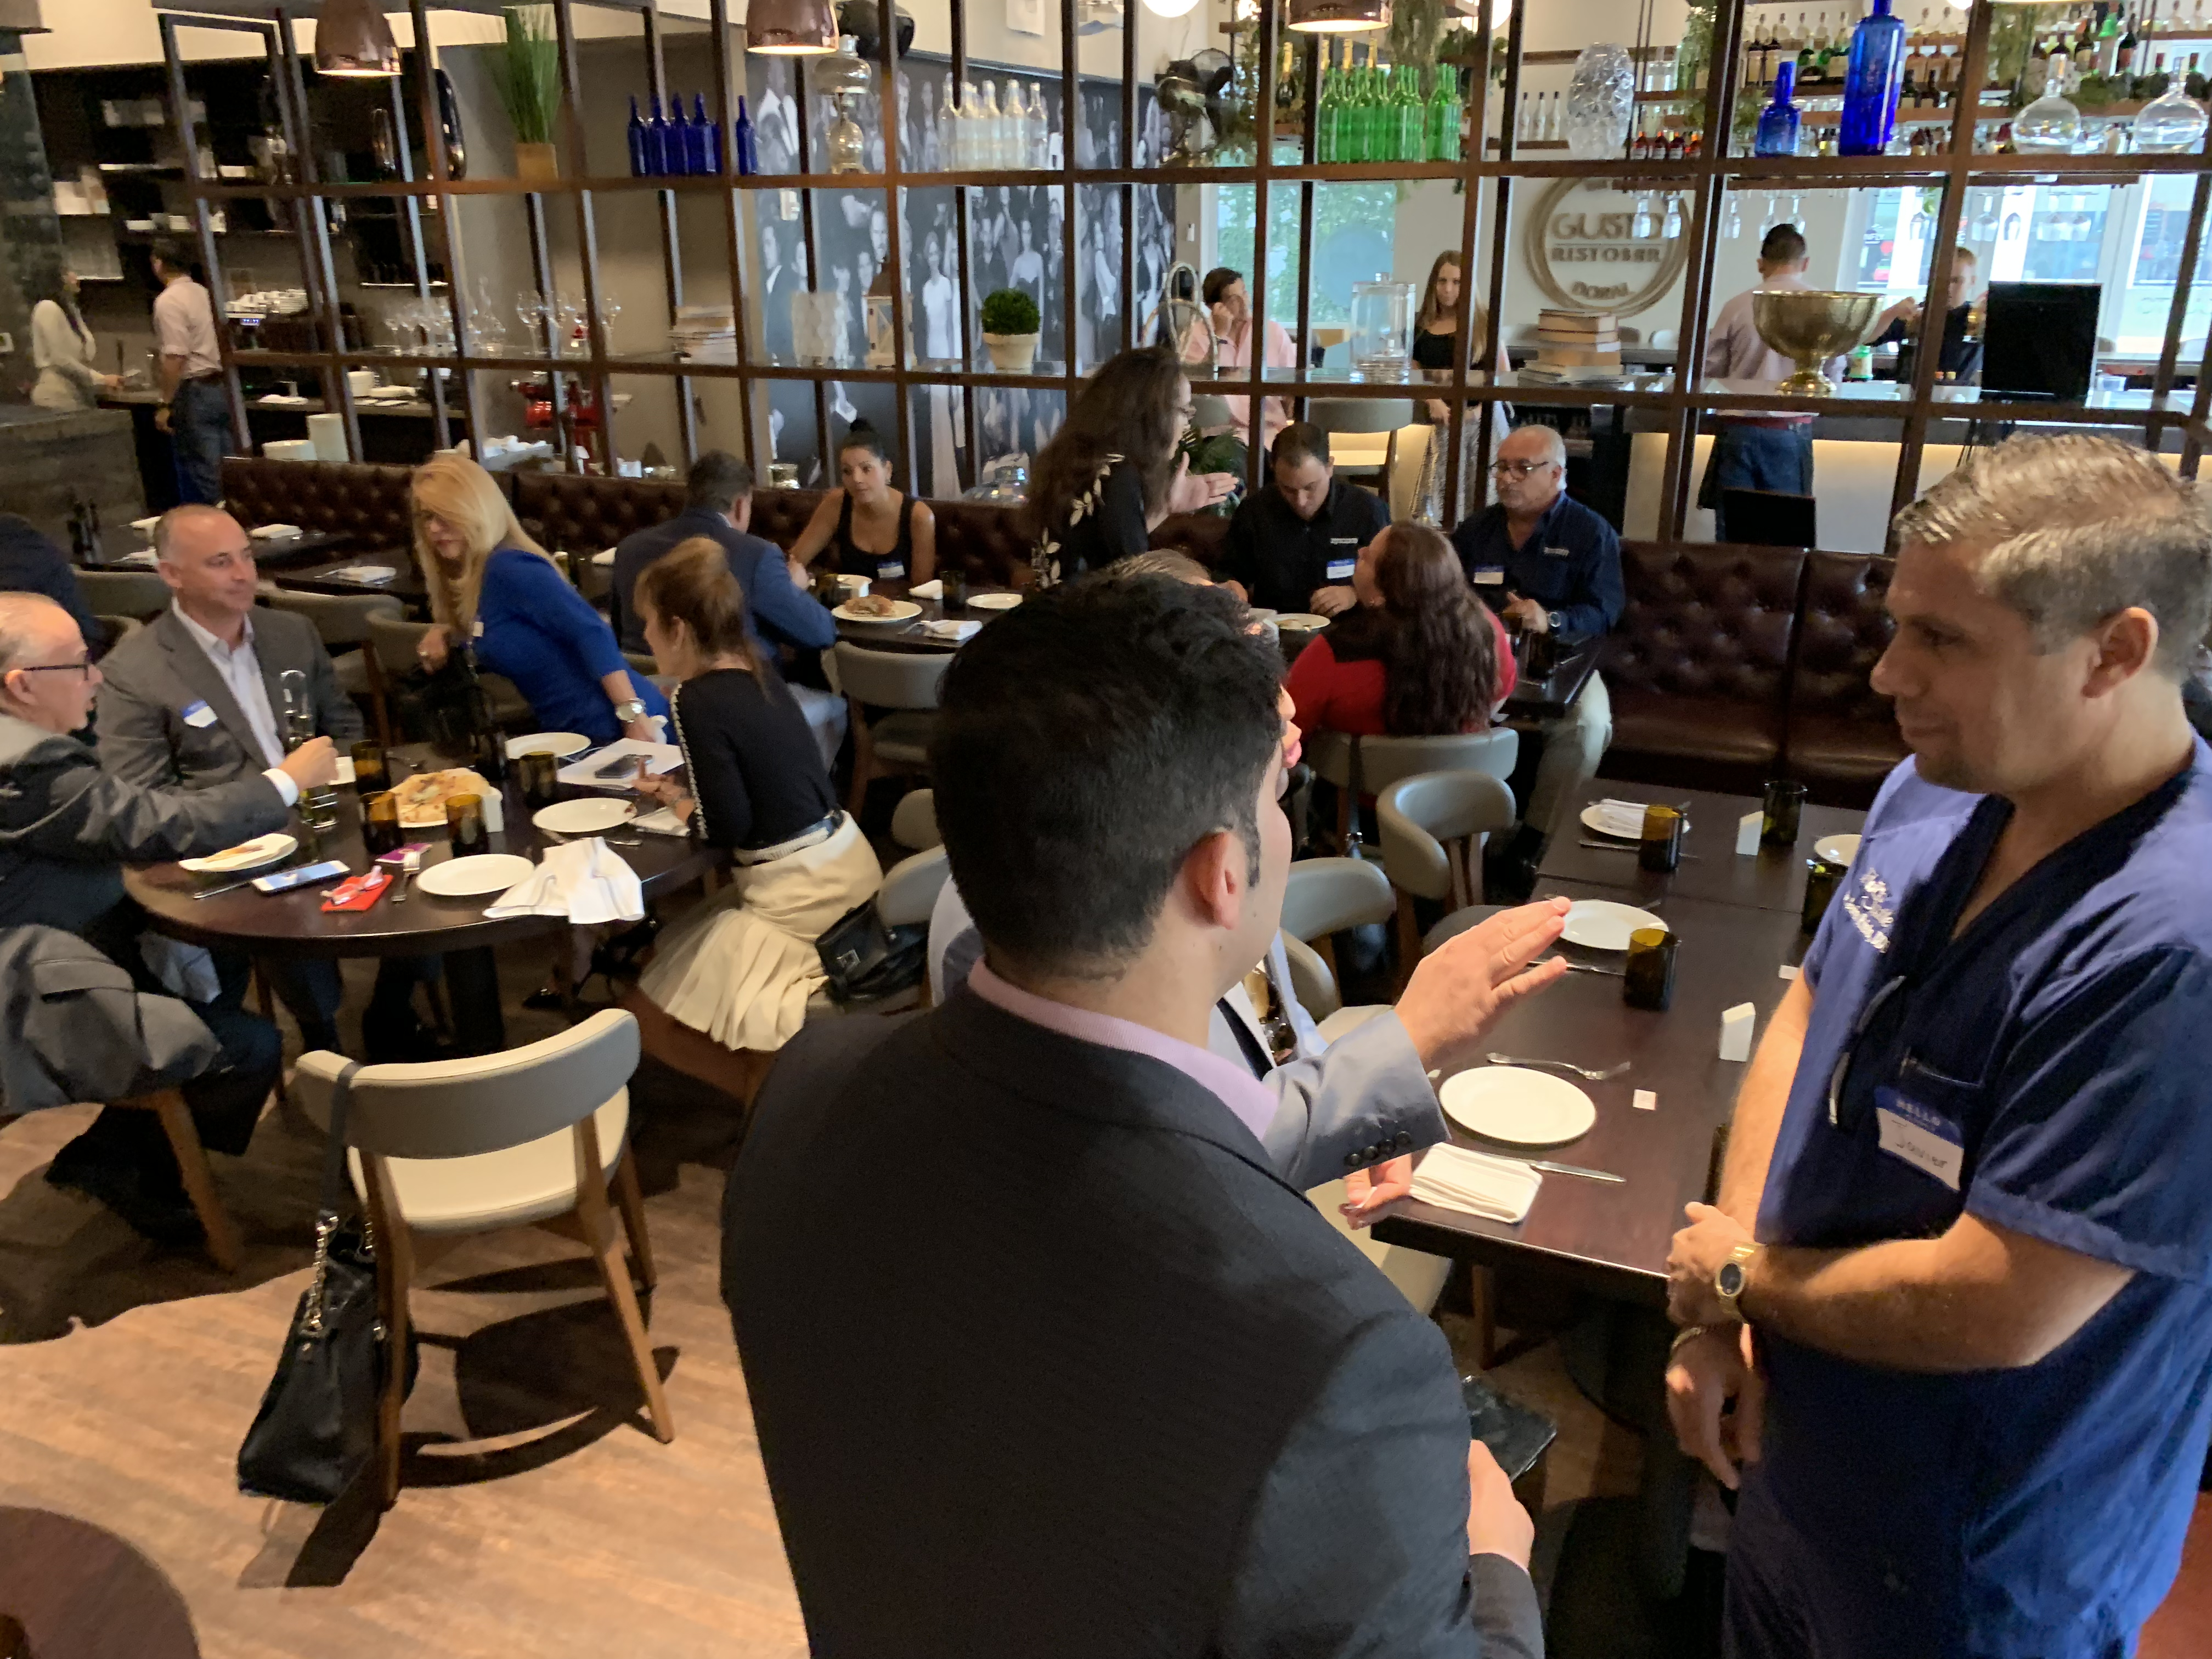 Doral Chamber of Commerce introduces Gusto Ristobar Luncheon in Doral, Florida.